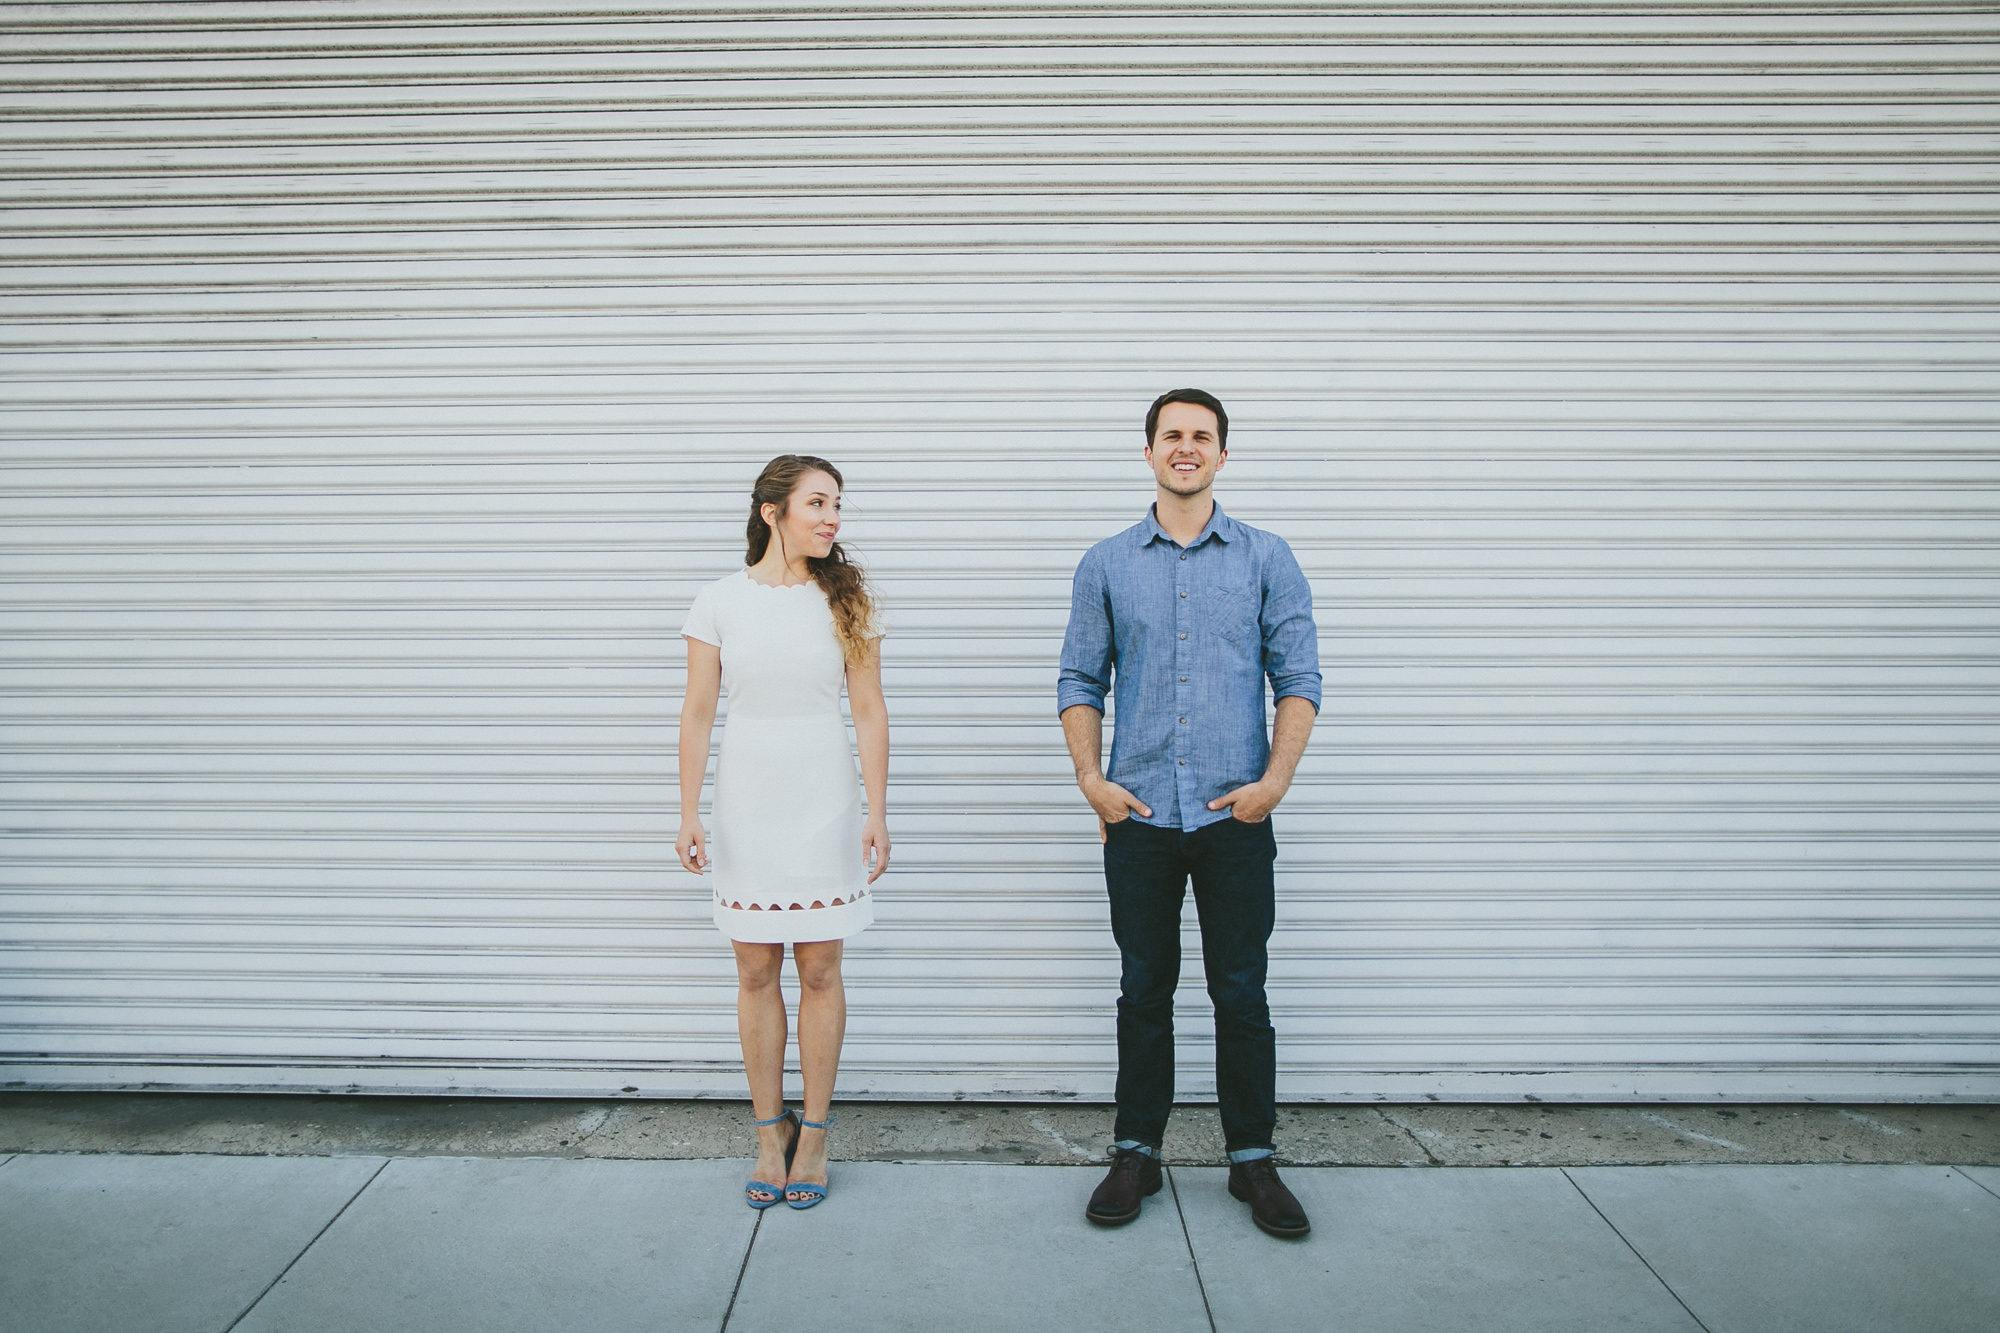 Emily+Paul-ENGAGEMENT_KellyBoitano-WEB-13